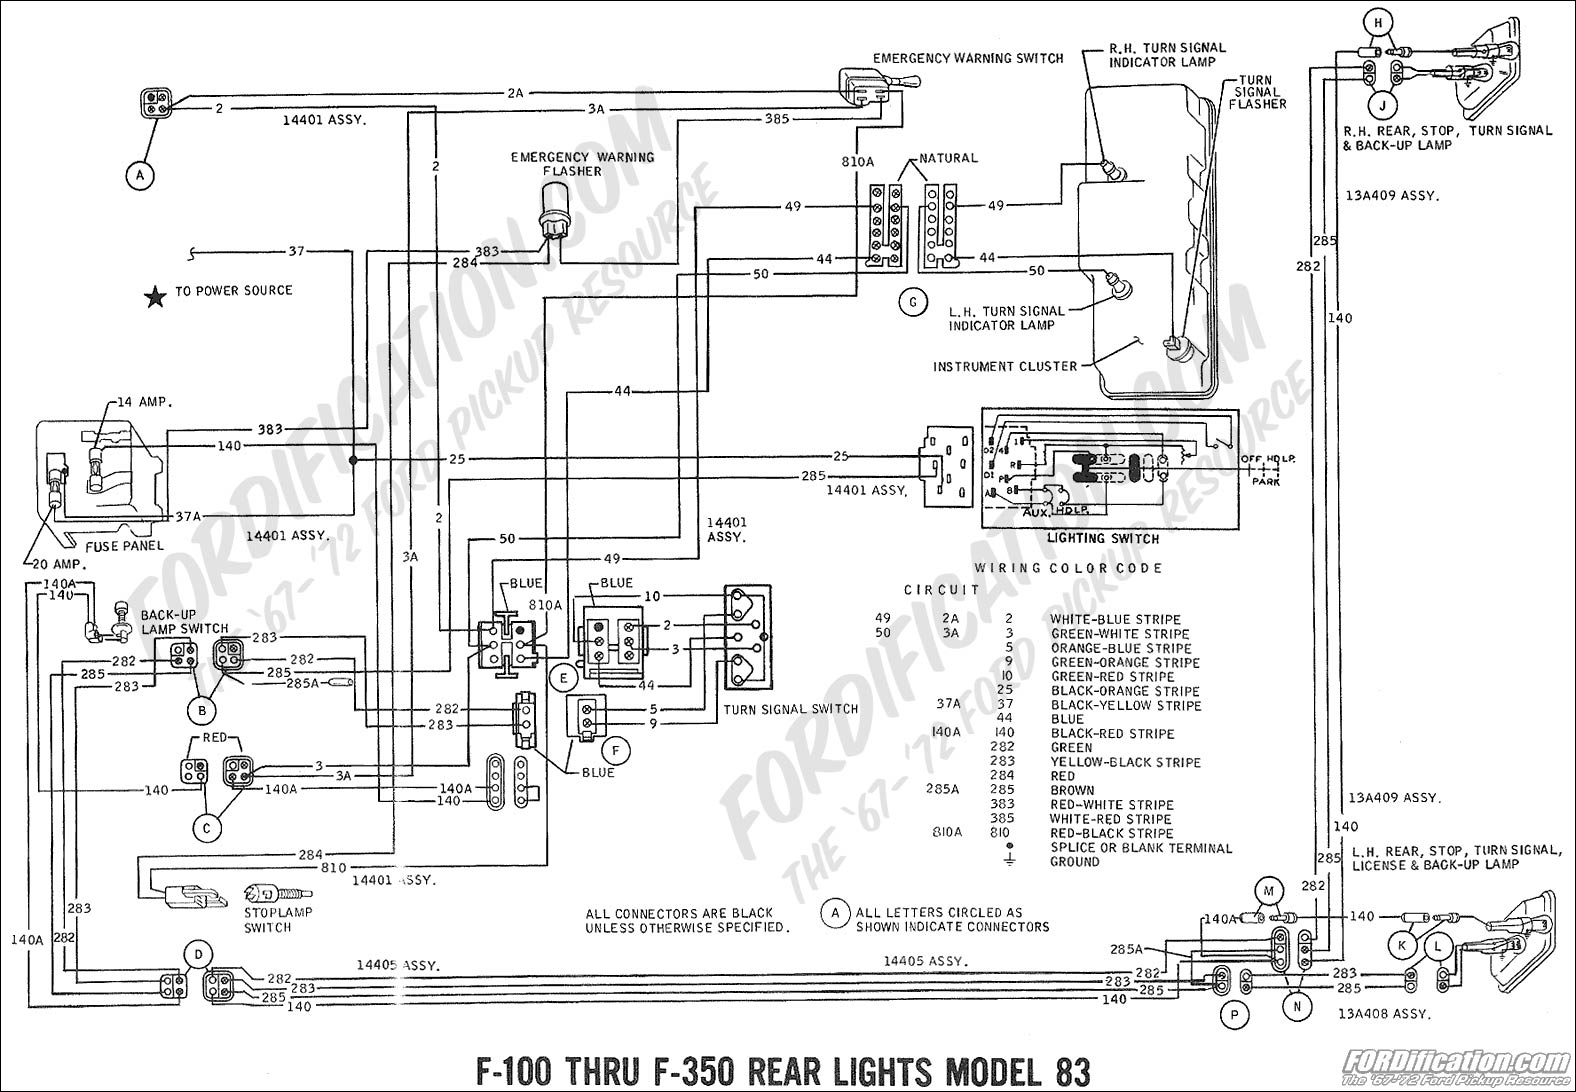 972665 Brake Lights Rear Hazard Lights Not Working further Schematics i besides 1338085 Ford Truck Information And Then Some likewise Imagranger01 besides Wiring. on 1990 ford e150 alternator wiring